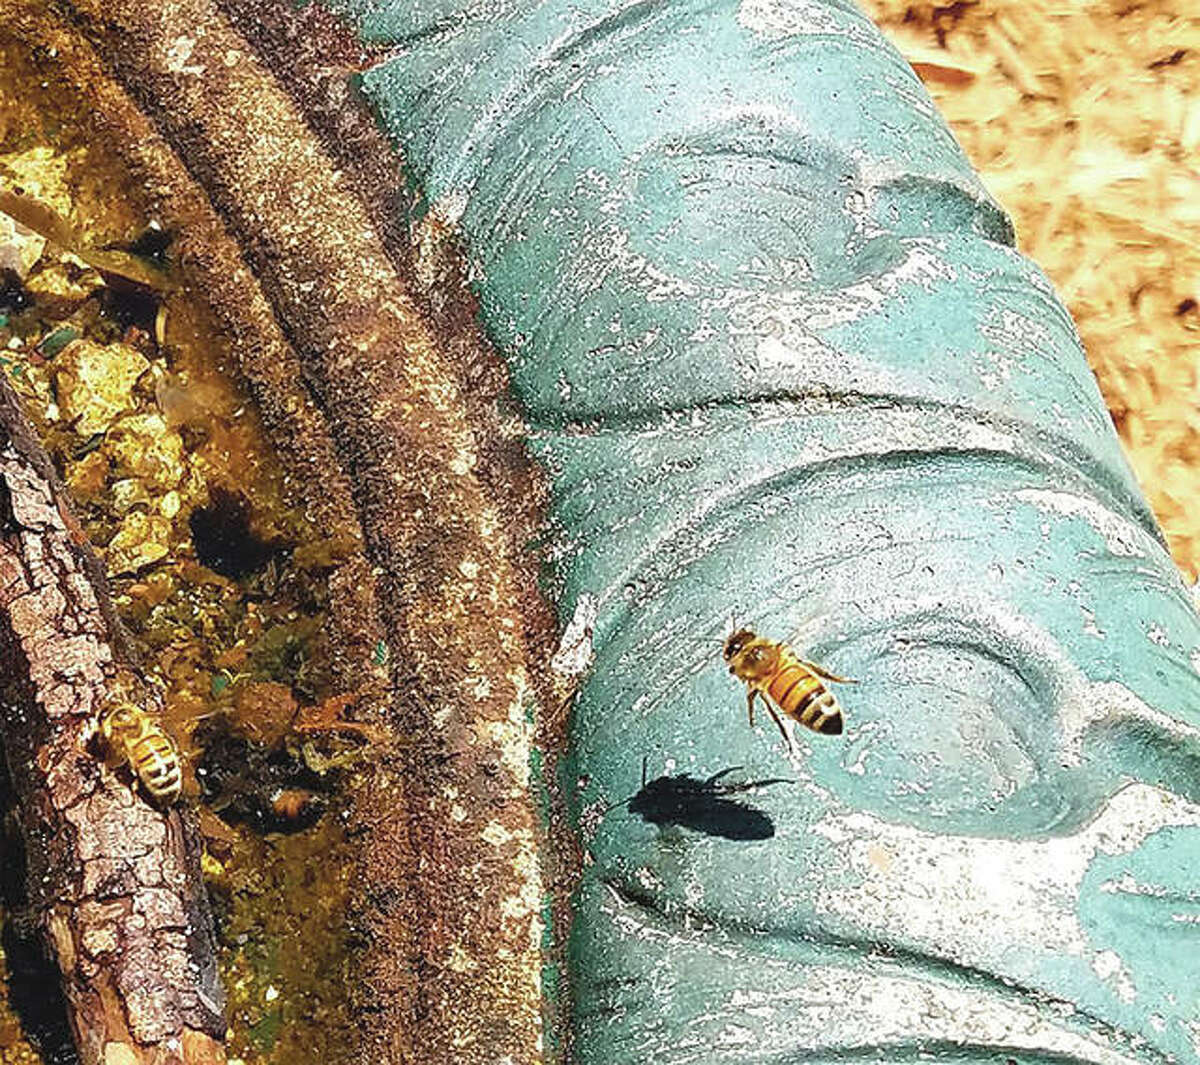 Bees make use of a bird bath in Jacksonville.